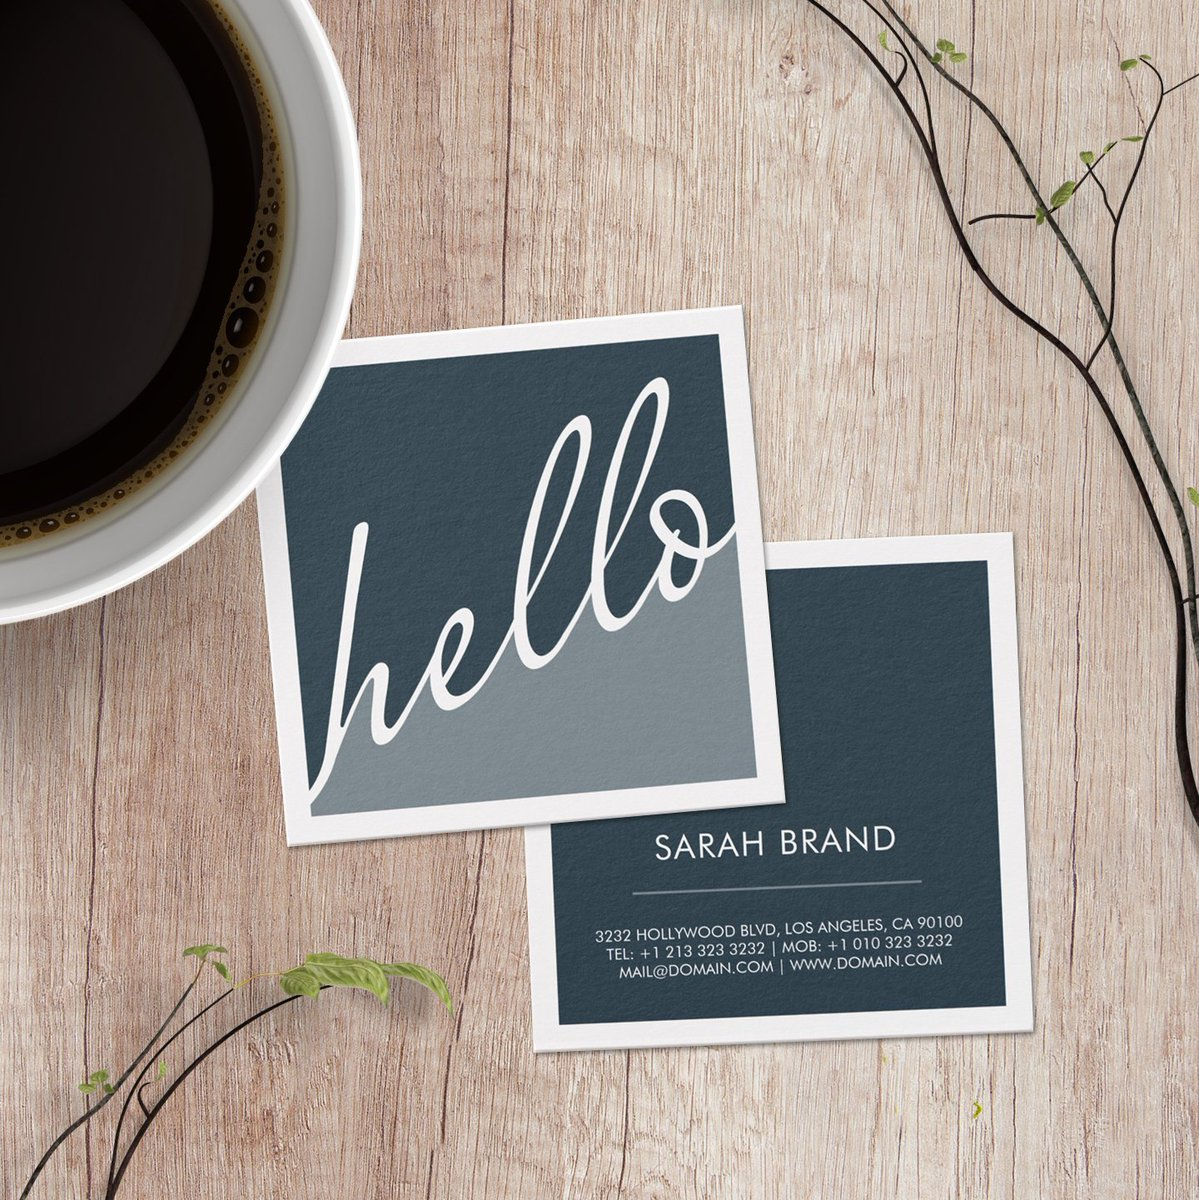 #Hello How are you! https://t.co/BzoHkuQCN8 #BusinessCards #sayhello #trendy #square #businesscard https://t.co/KU5YktrmZF